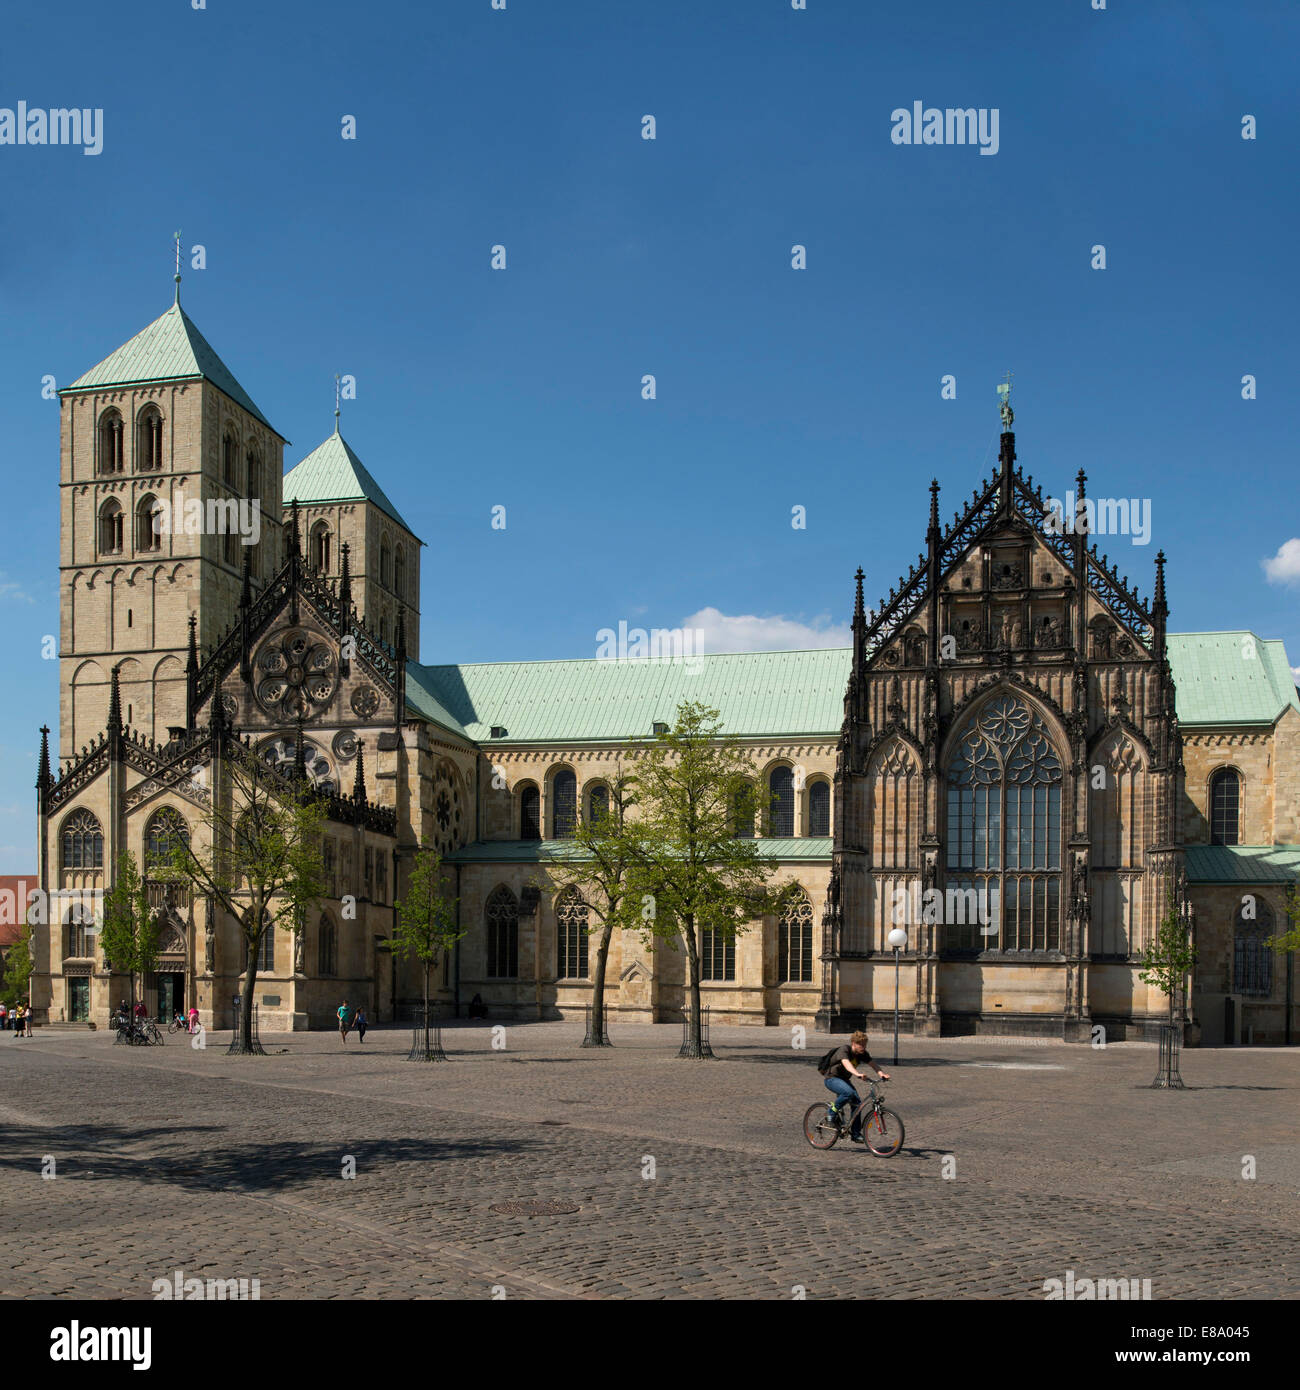 Southern front to the Domplatz cathedral square, Münster Cathedral, Münster, North Rhine-Westphalia, Germany - Stock Image